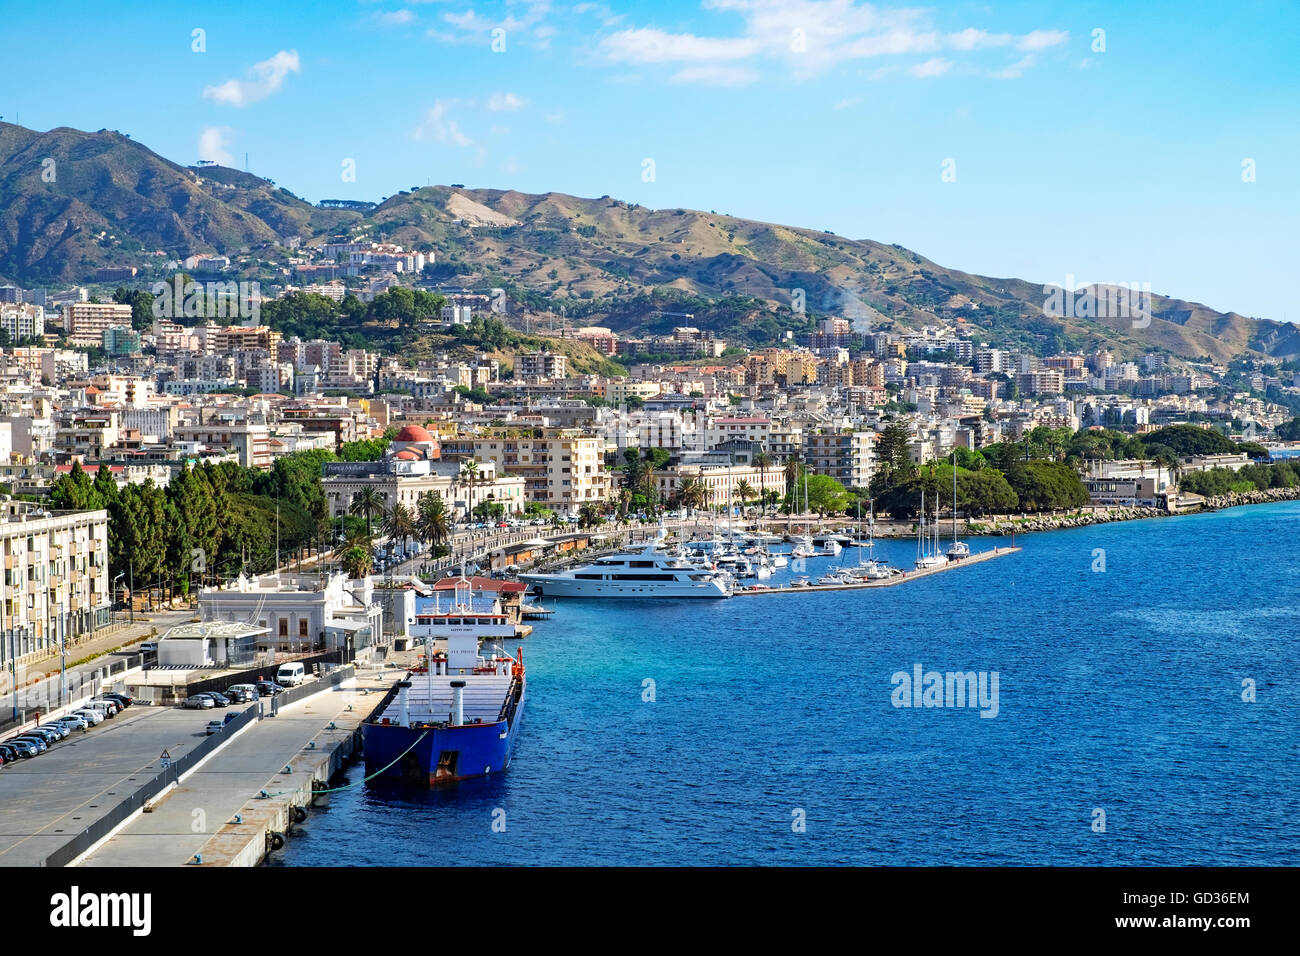 Photos of messina italy